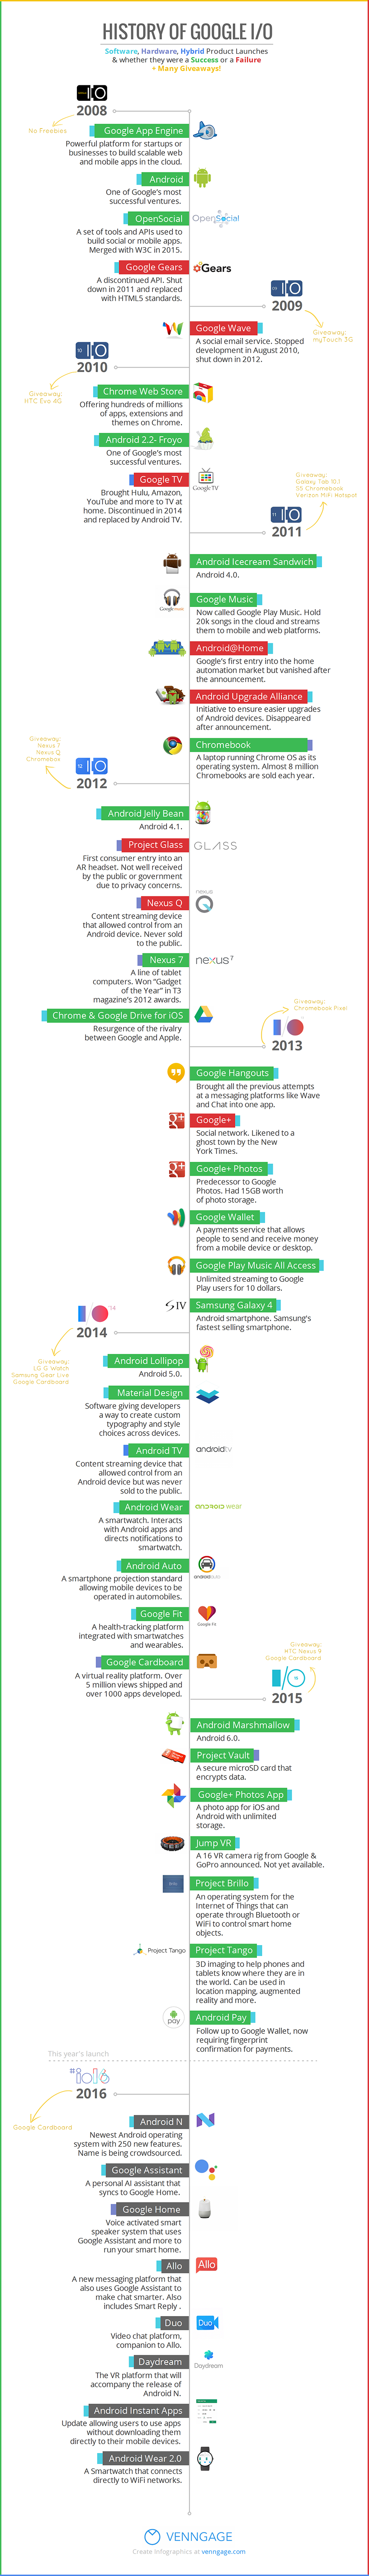 Infographic: History of Google I/O | Venngage